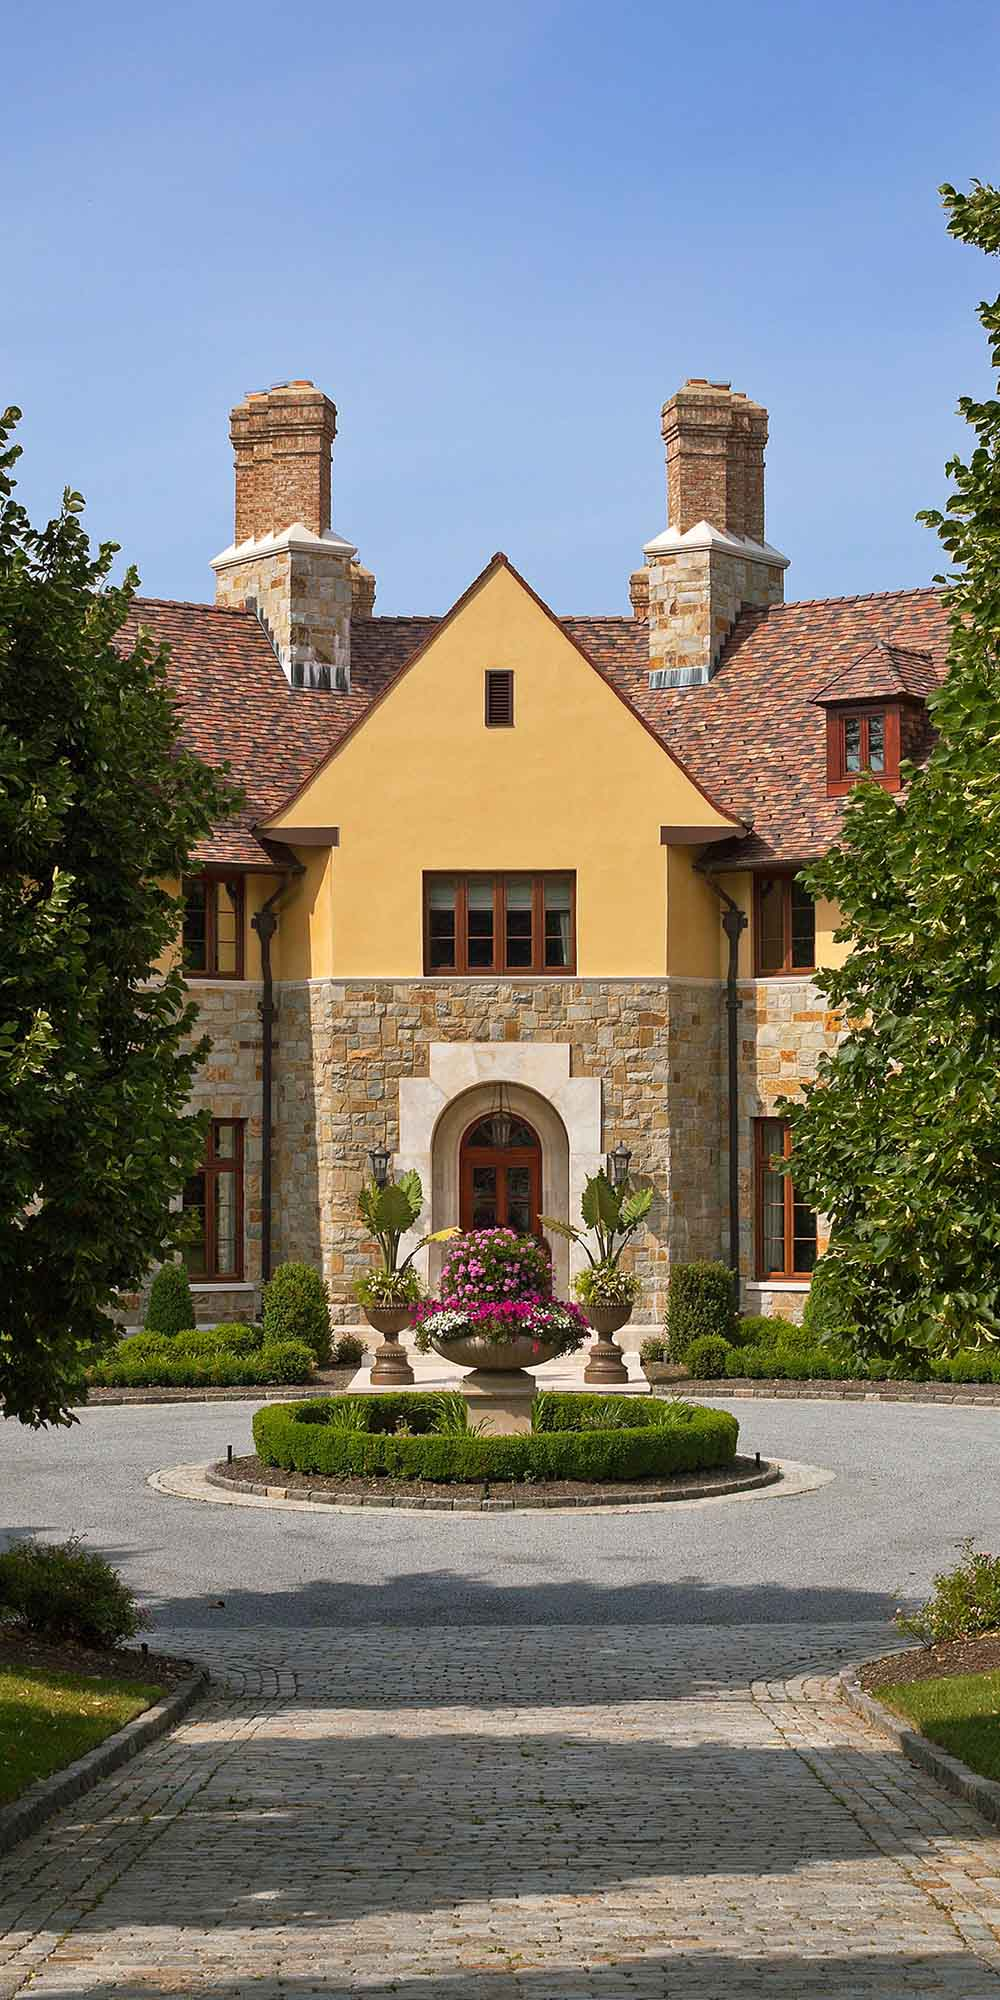 English Country, exterior, entry, stone driveway, gravel courtyard, arched entryway, stone stucco